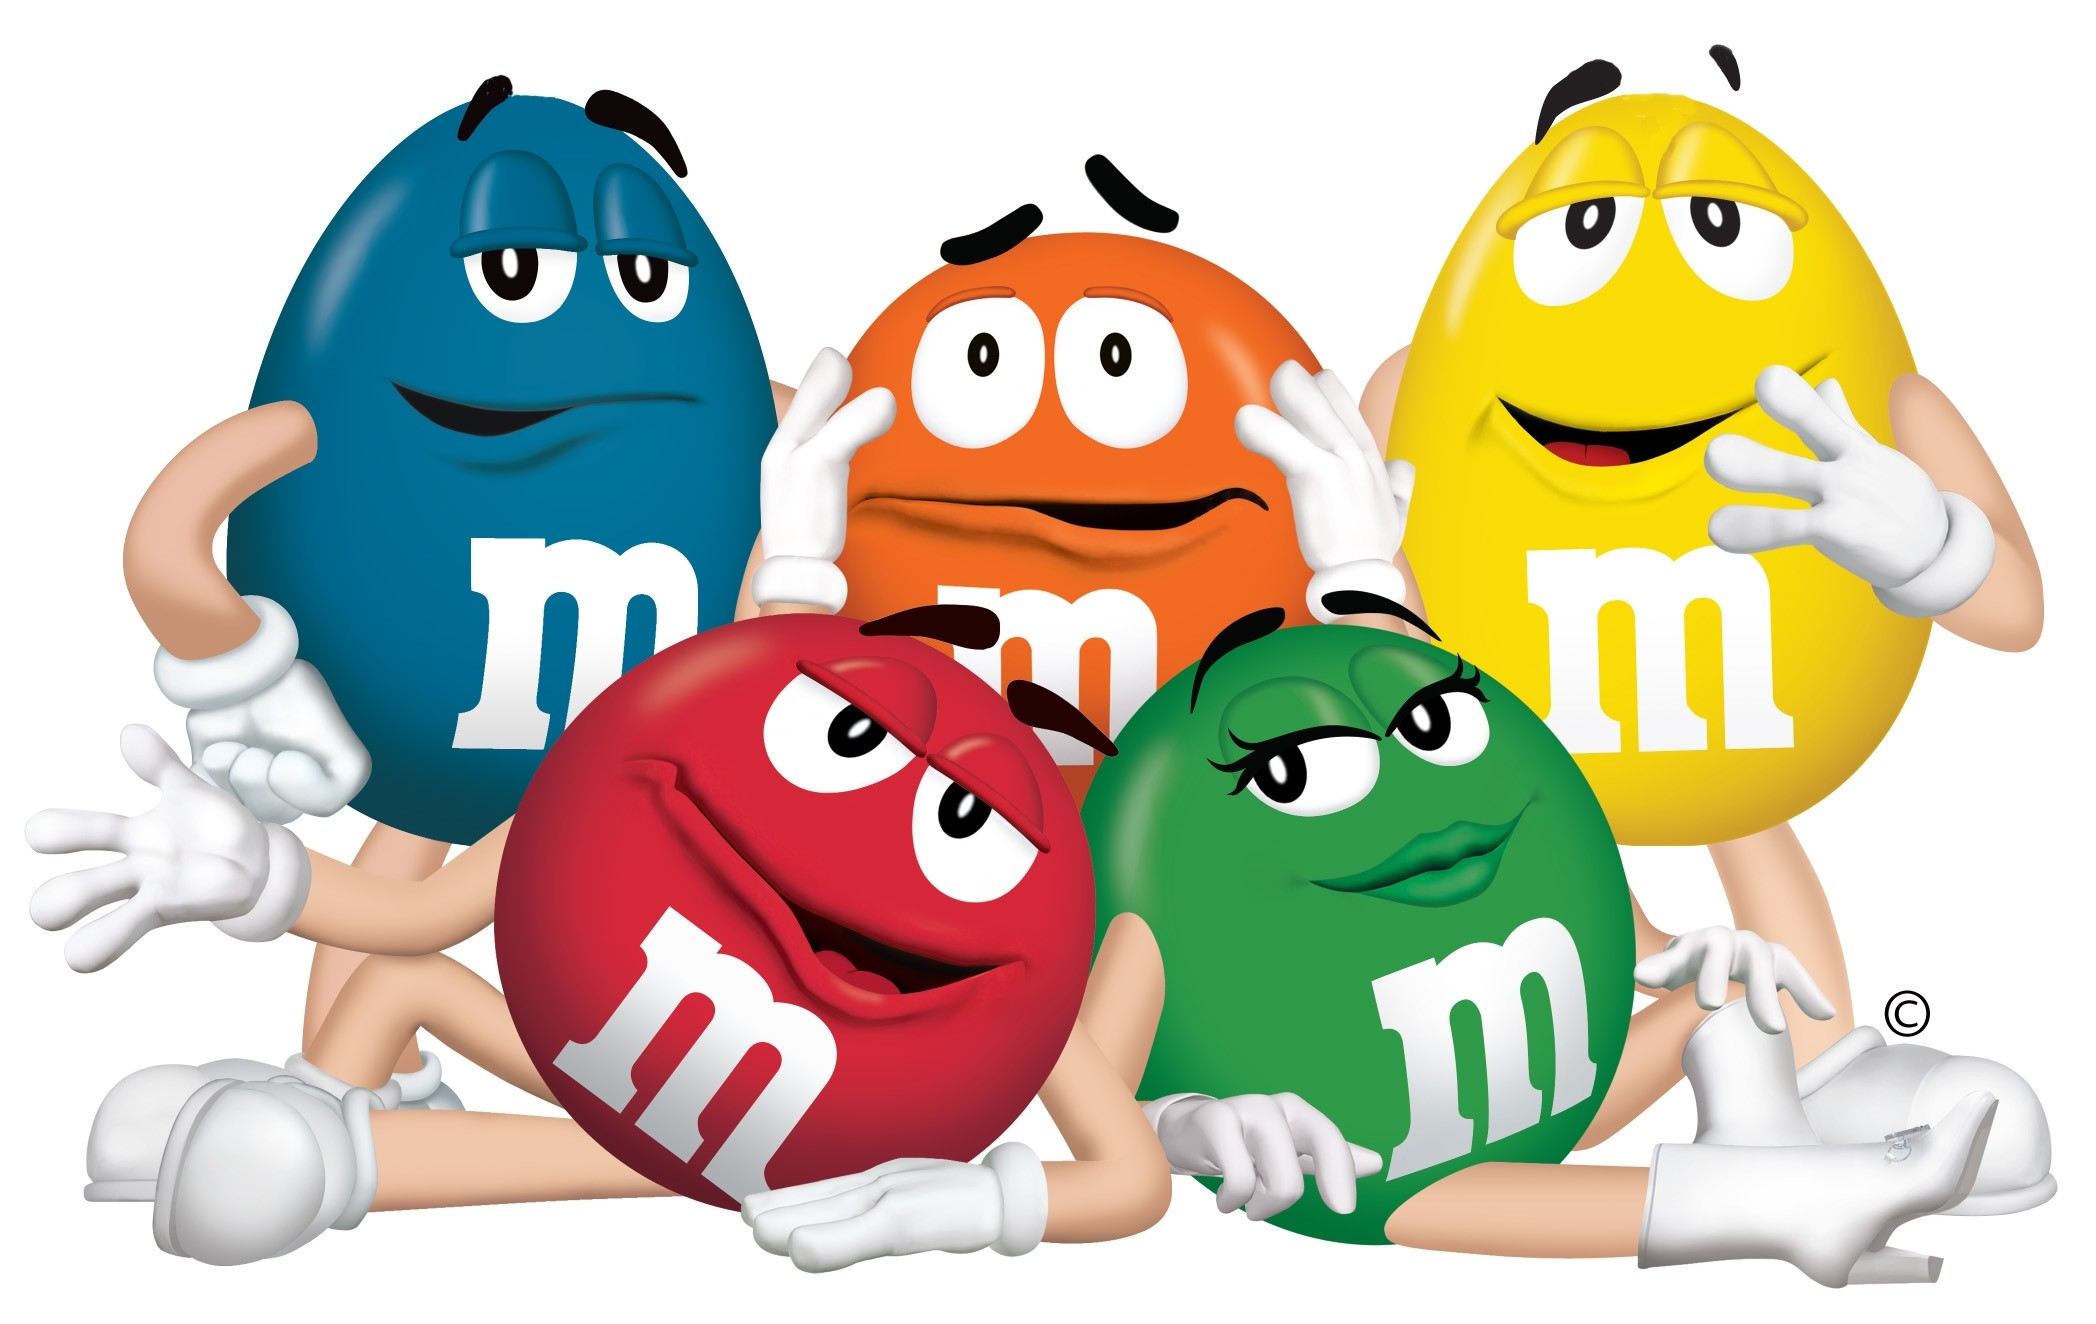 Wallpaper m and m, mm, characters, chocolate, candy, blue, orange